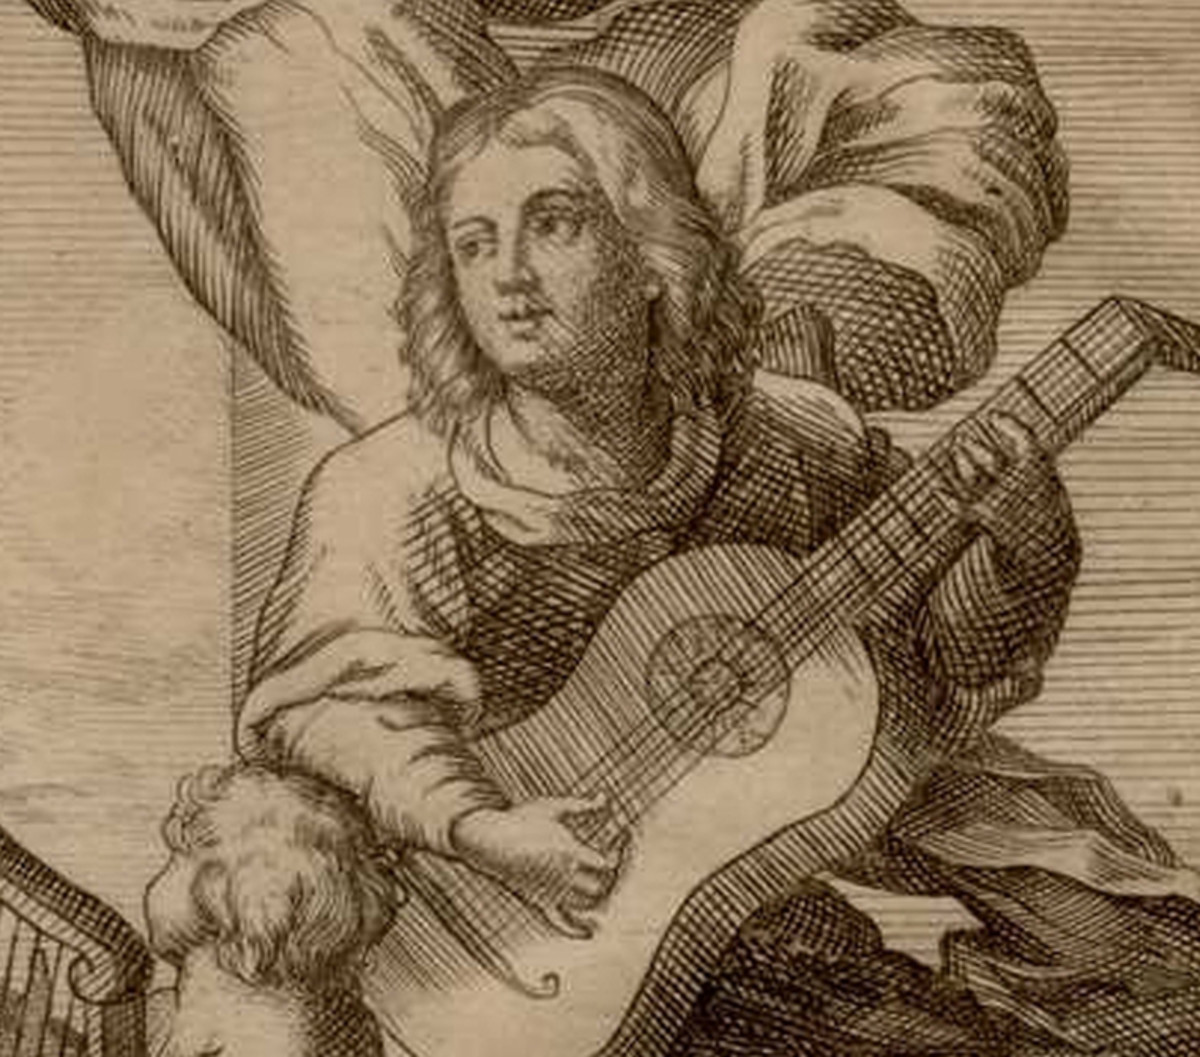 This image detail appears on the frontispiece of Sanz' Instrucción de Música. It's not certain if it represents him.